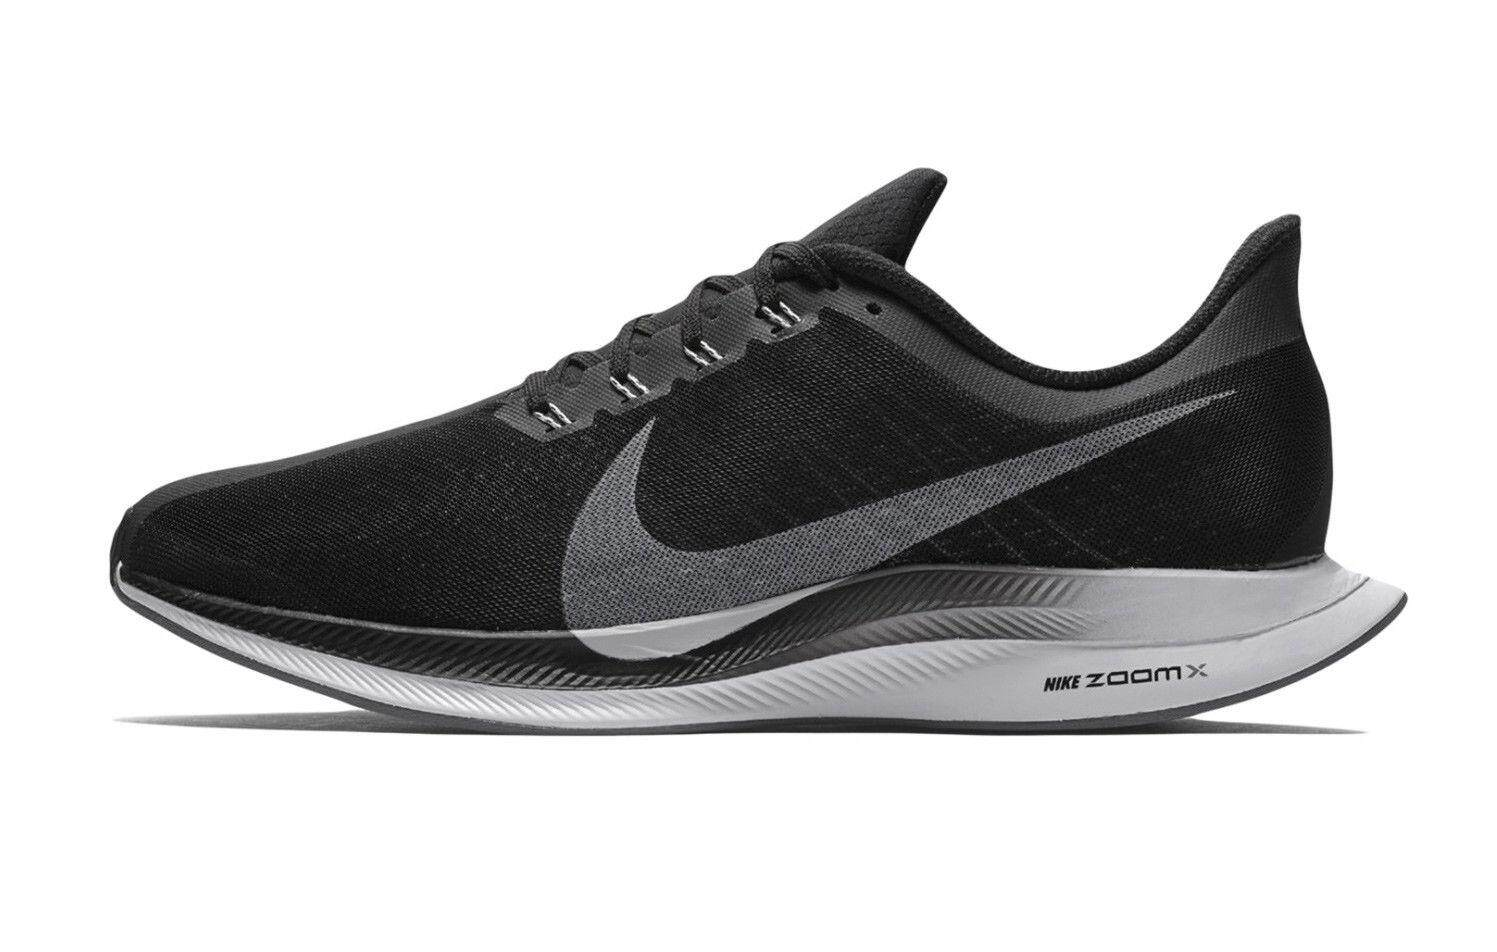 72806ef783d0 Nike Products   Accessories at Best Price in Malaysia